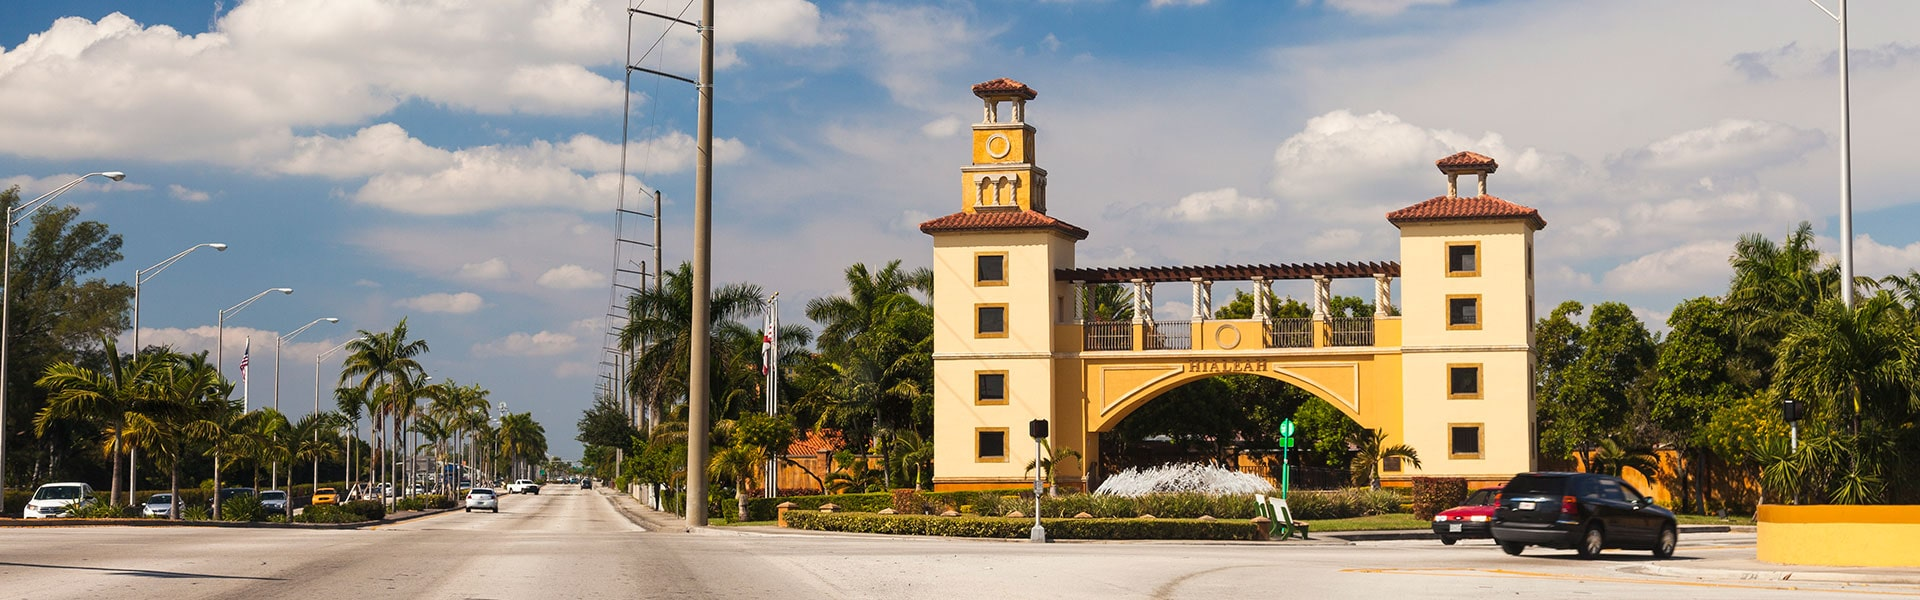 The city of Hialeah in South Florida is home to a variety of pests.